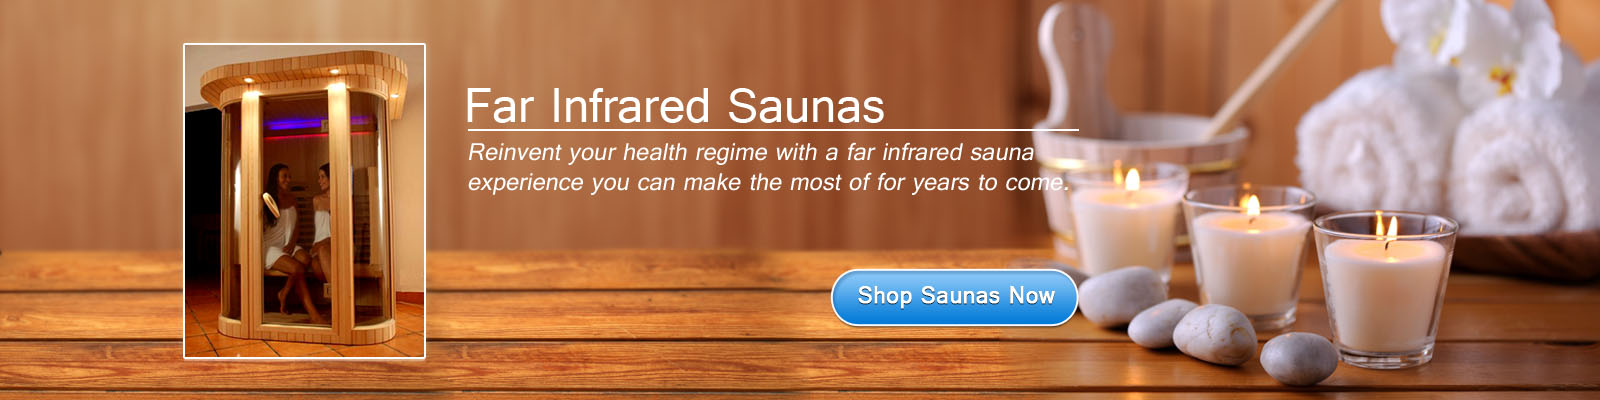 Infrared Saunas Sale